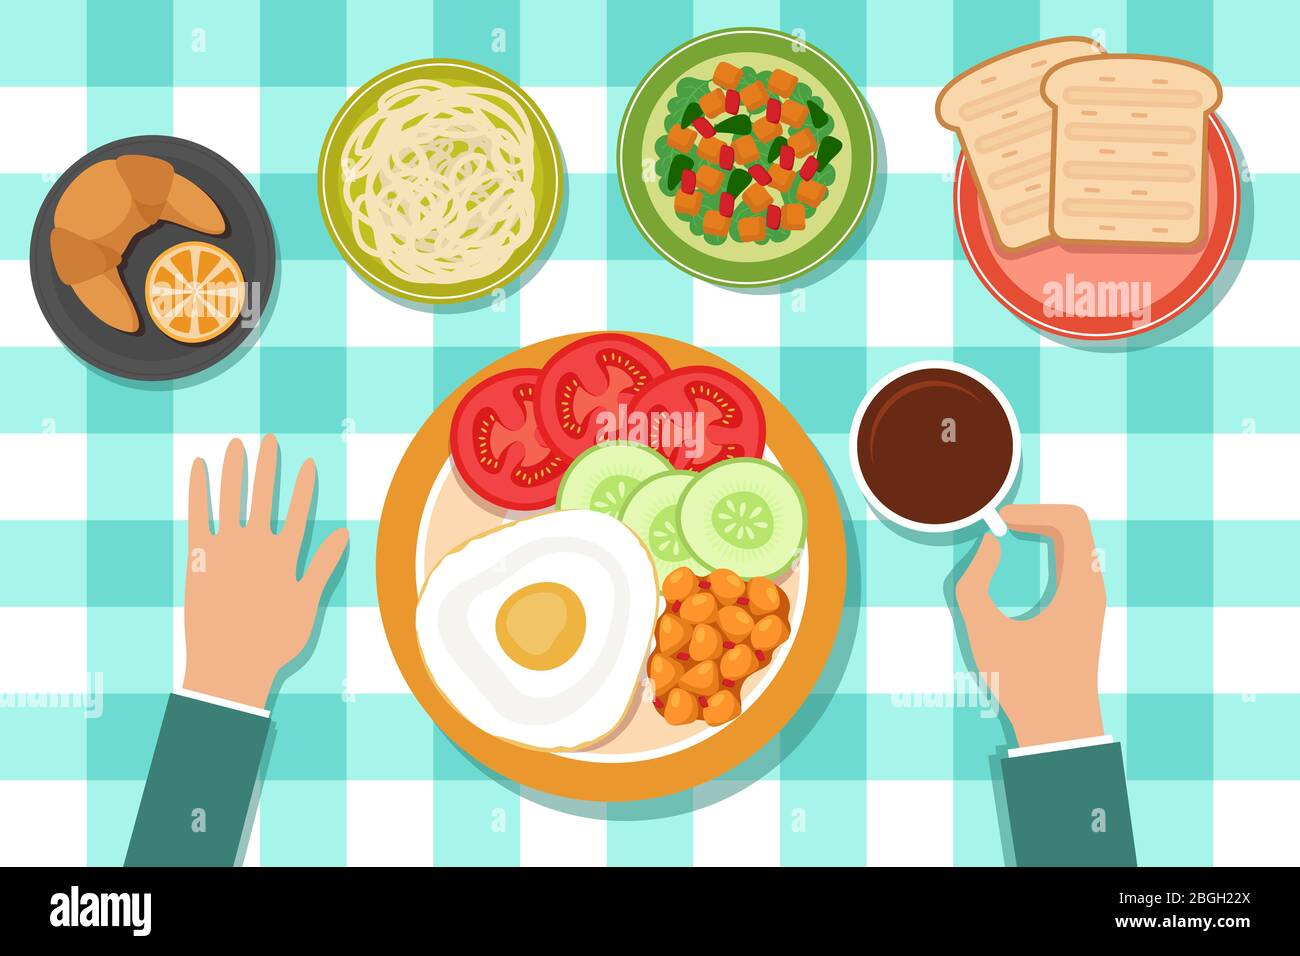 Breakfast Eating Food On Plates And Man Hand On Table Top View Vector Illustration Dish Food On Table Drink Of Tea Stock Vector Image Art Alamy